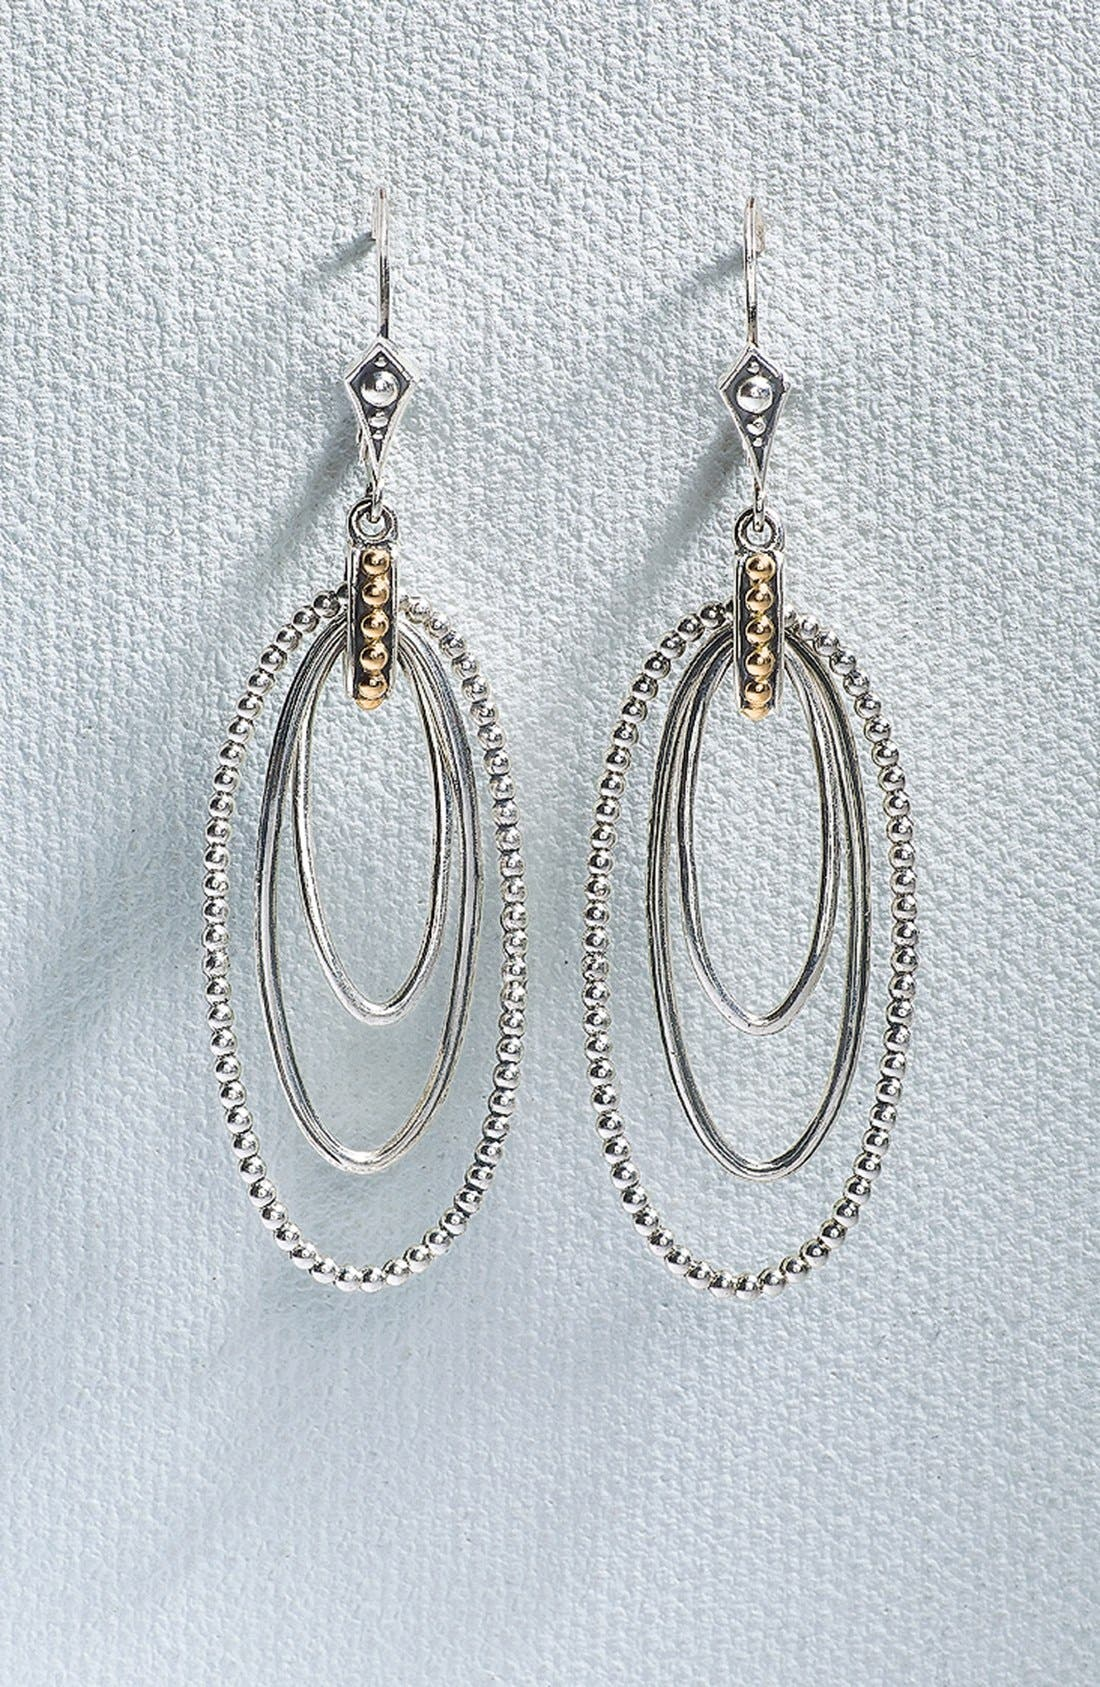 Caviar 'Superfine' Two-Tone Drop Earrings,                             Alternate thumbnail 3, color,                             SILVER/ GOLD